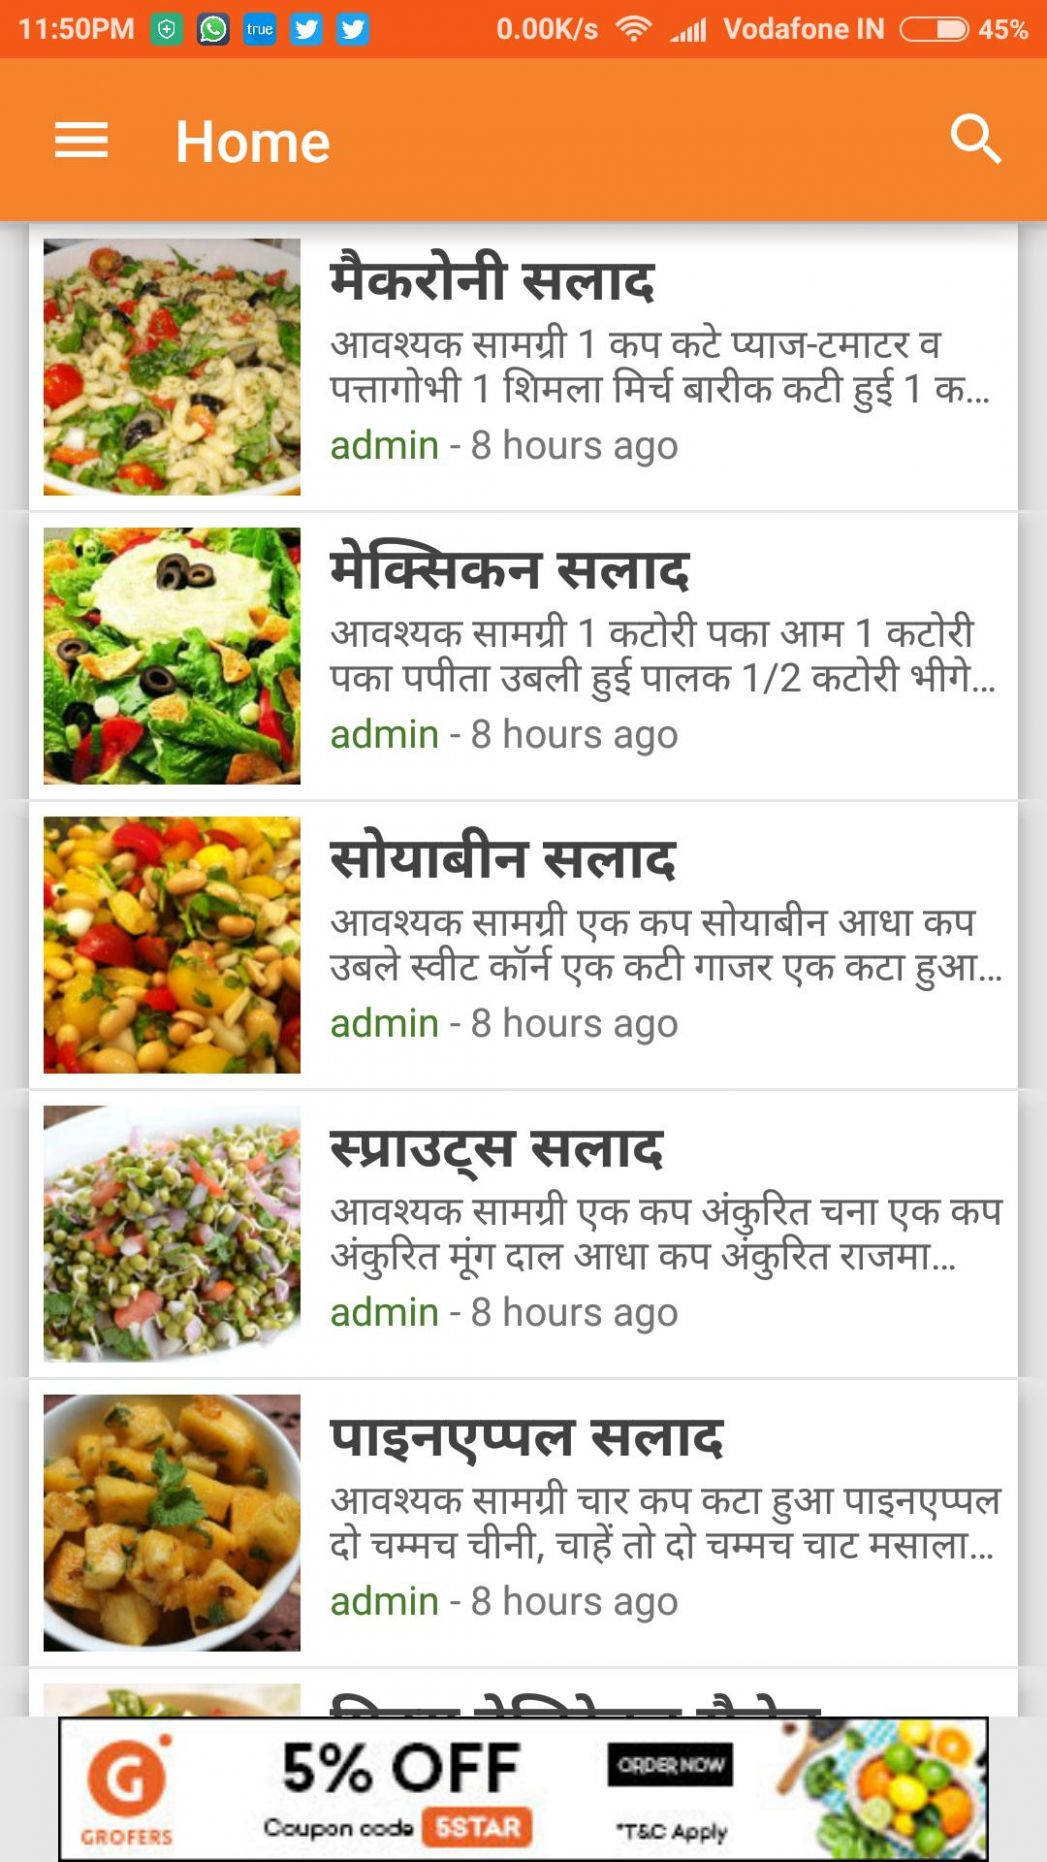 Salad Recipes in Hindi for Android - APK Download - Salad Recipes In Hindi